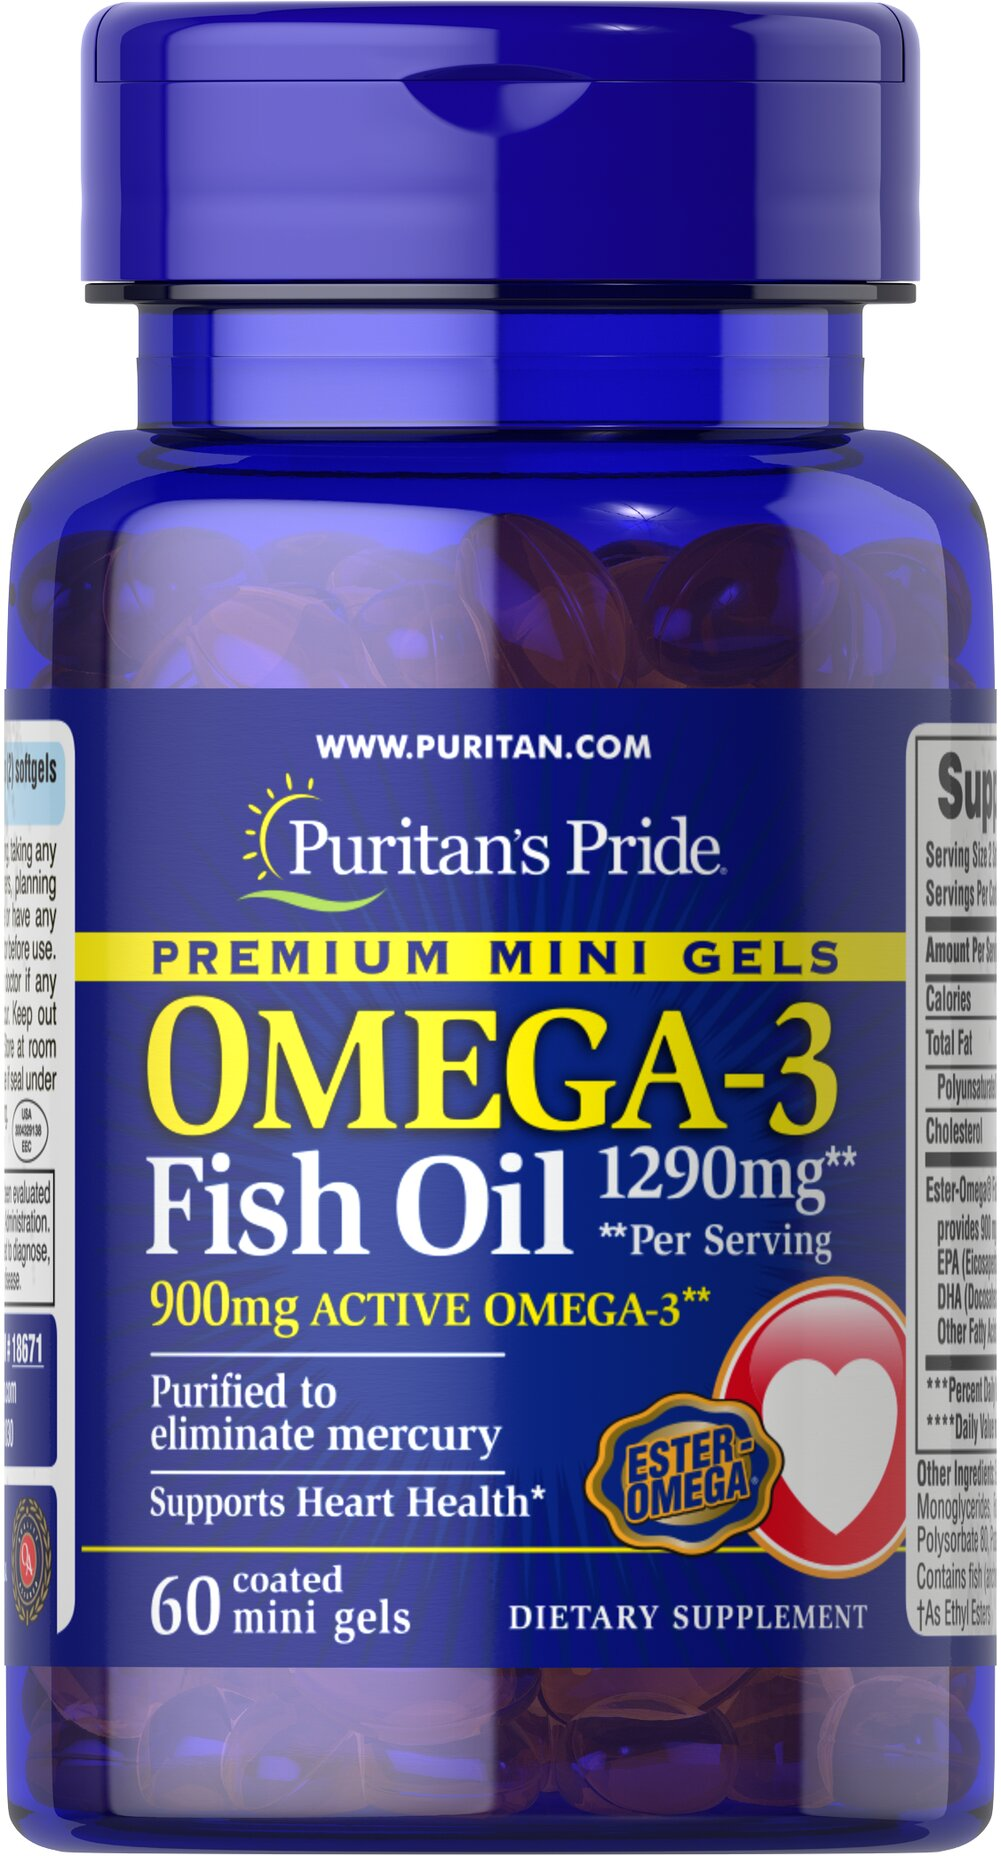 Omega-3 Fish Oil 645 mg Mini Gels (450 mg Active Omega-3)  60 Coated Softgels 645 mg $23.99